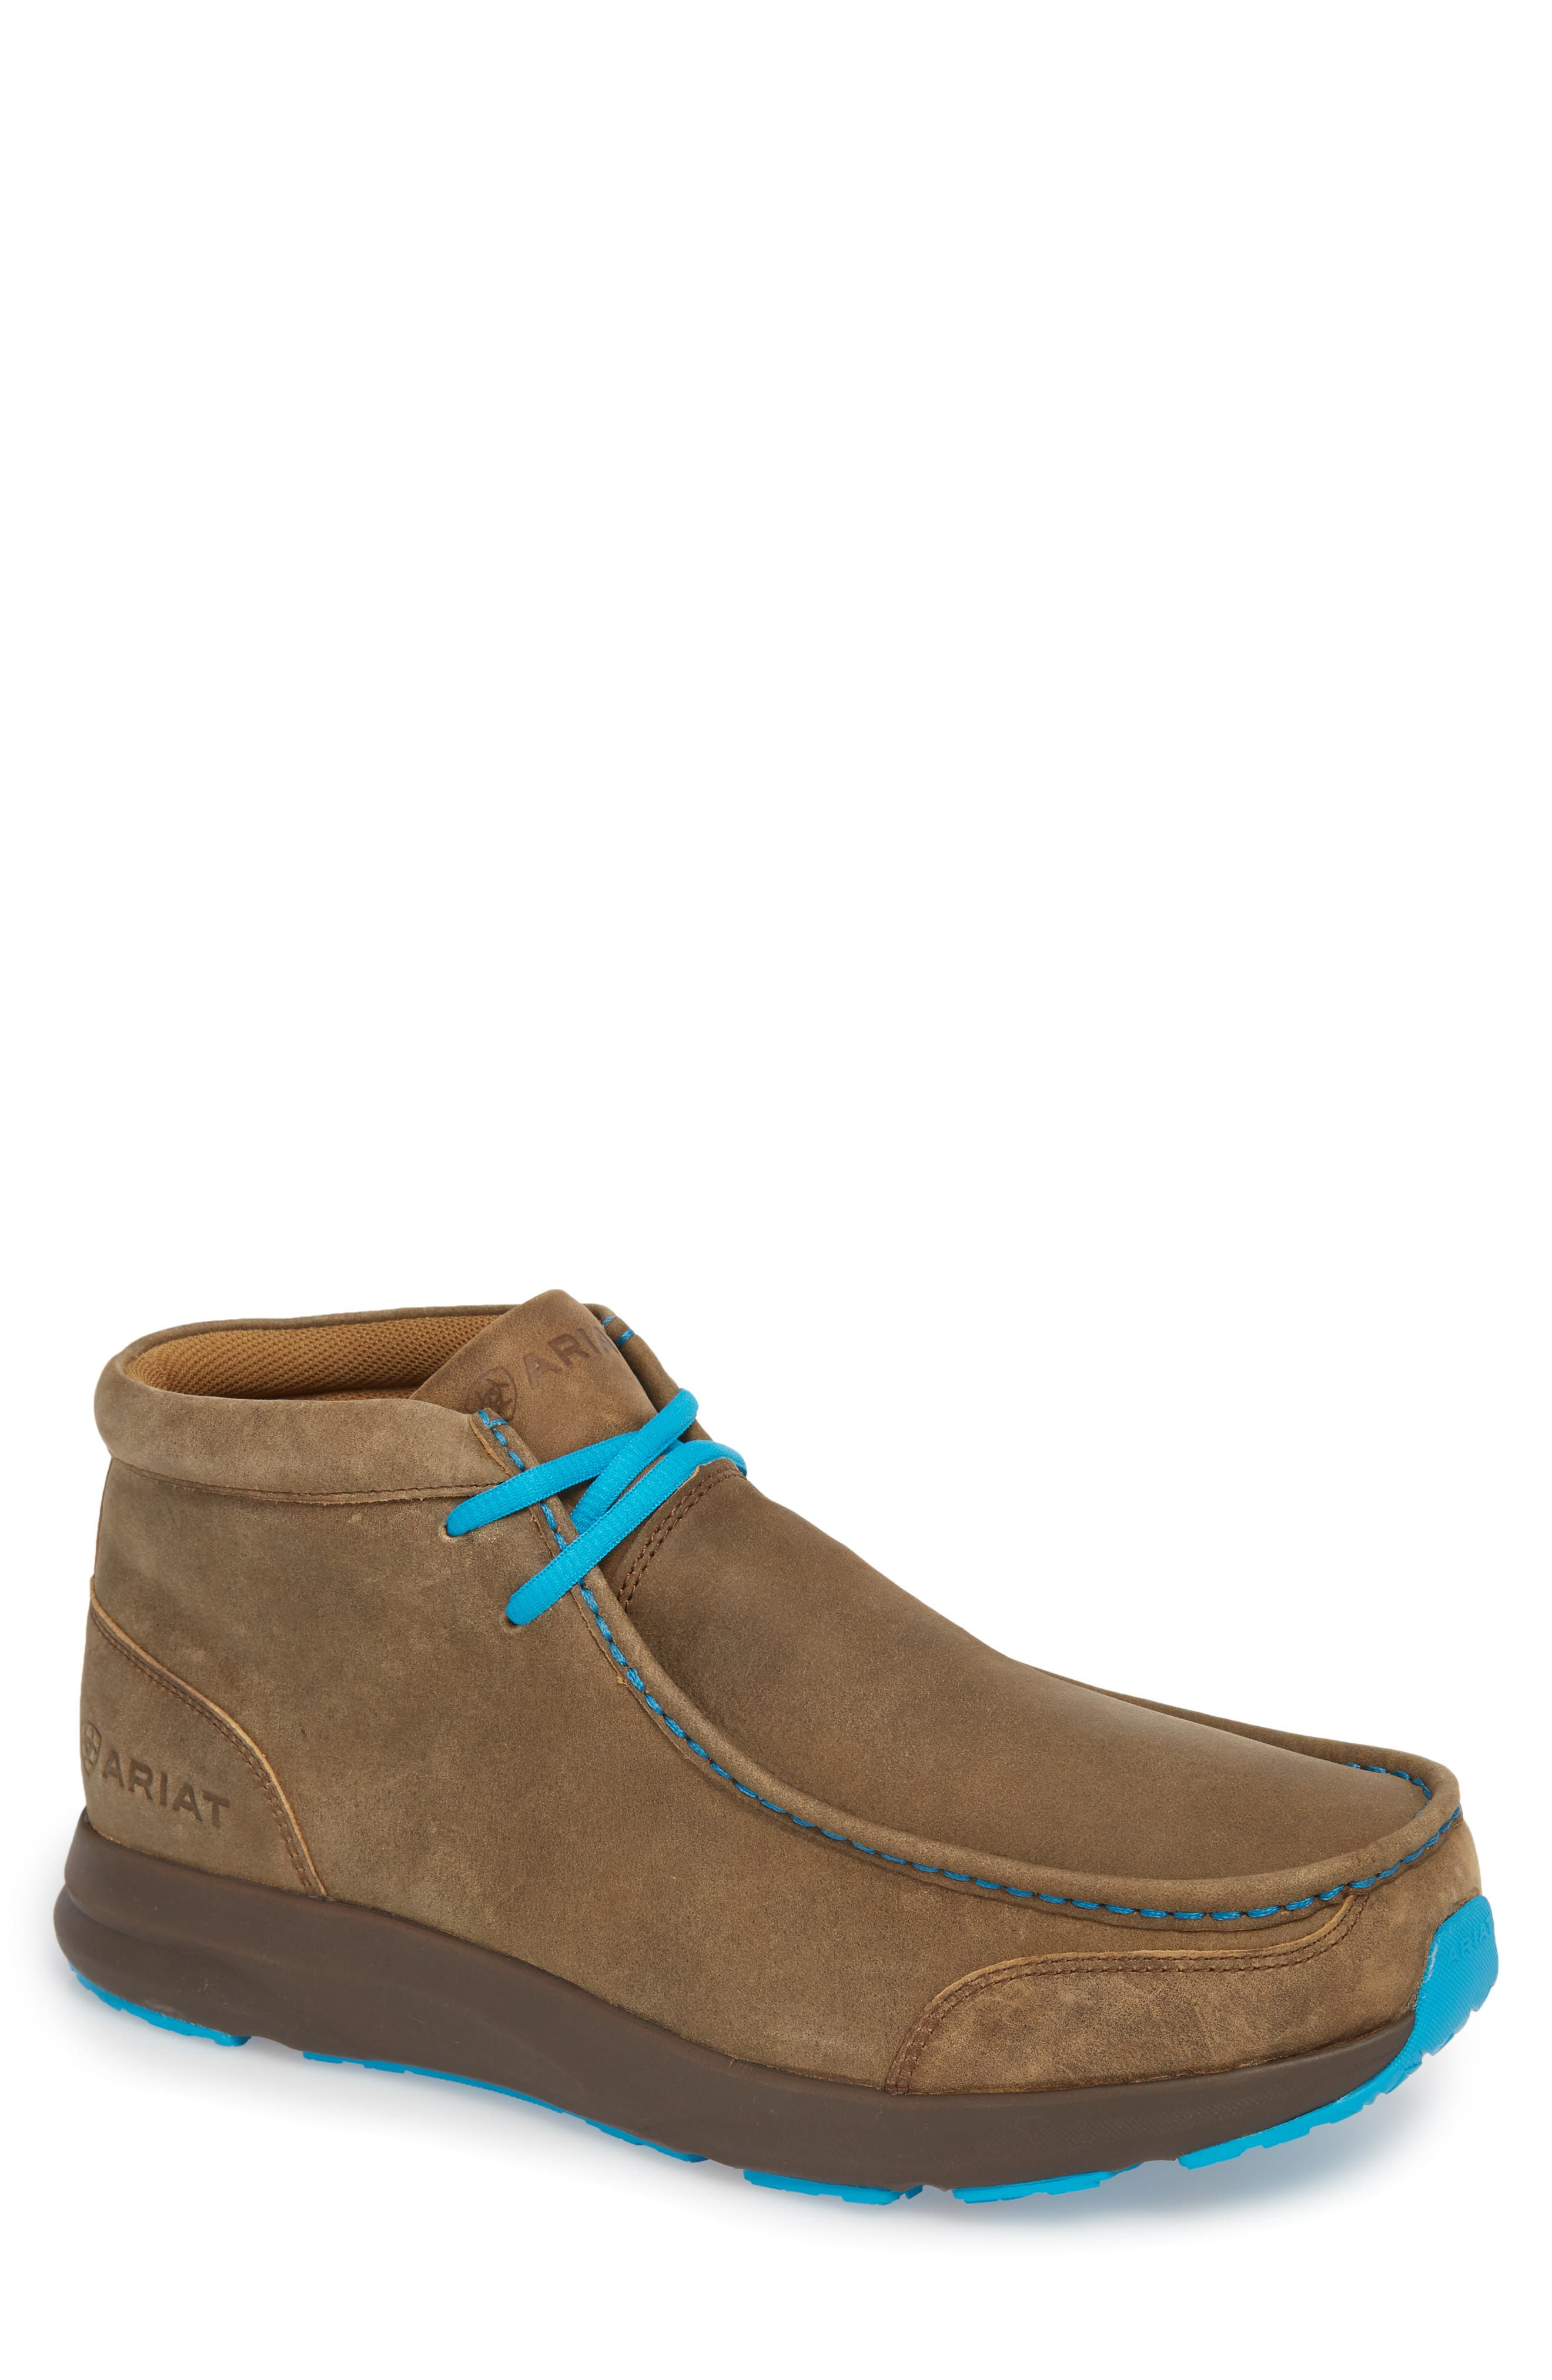 Spitfire Chukka Boot,                         Main,                         color, BROWN BOMBER/ BLUE LEATHER